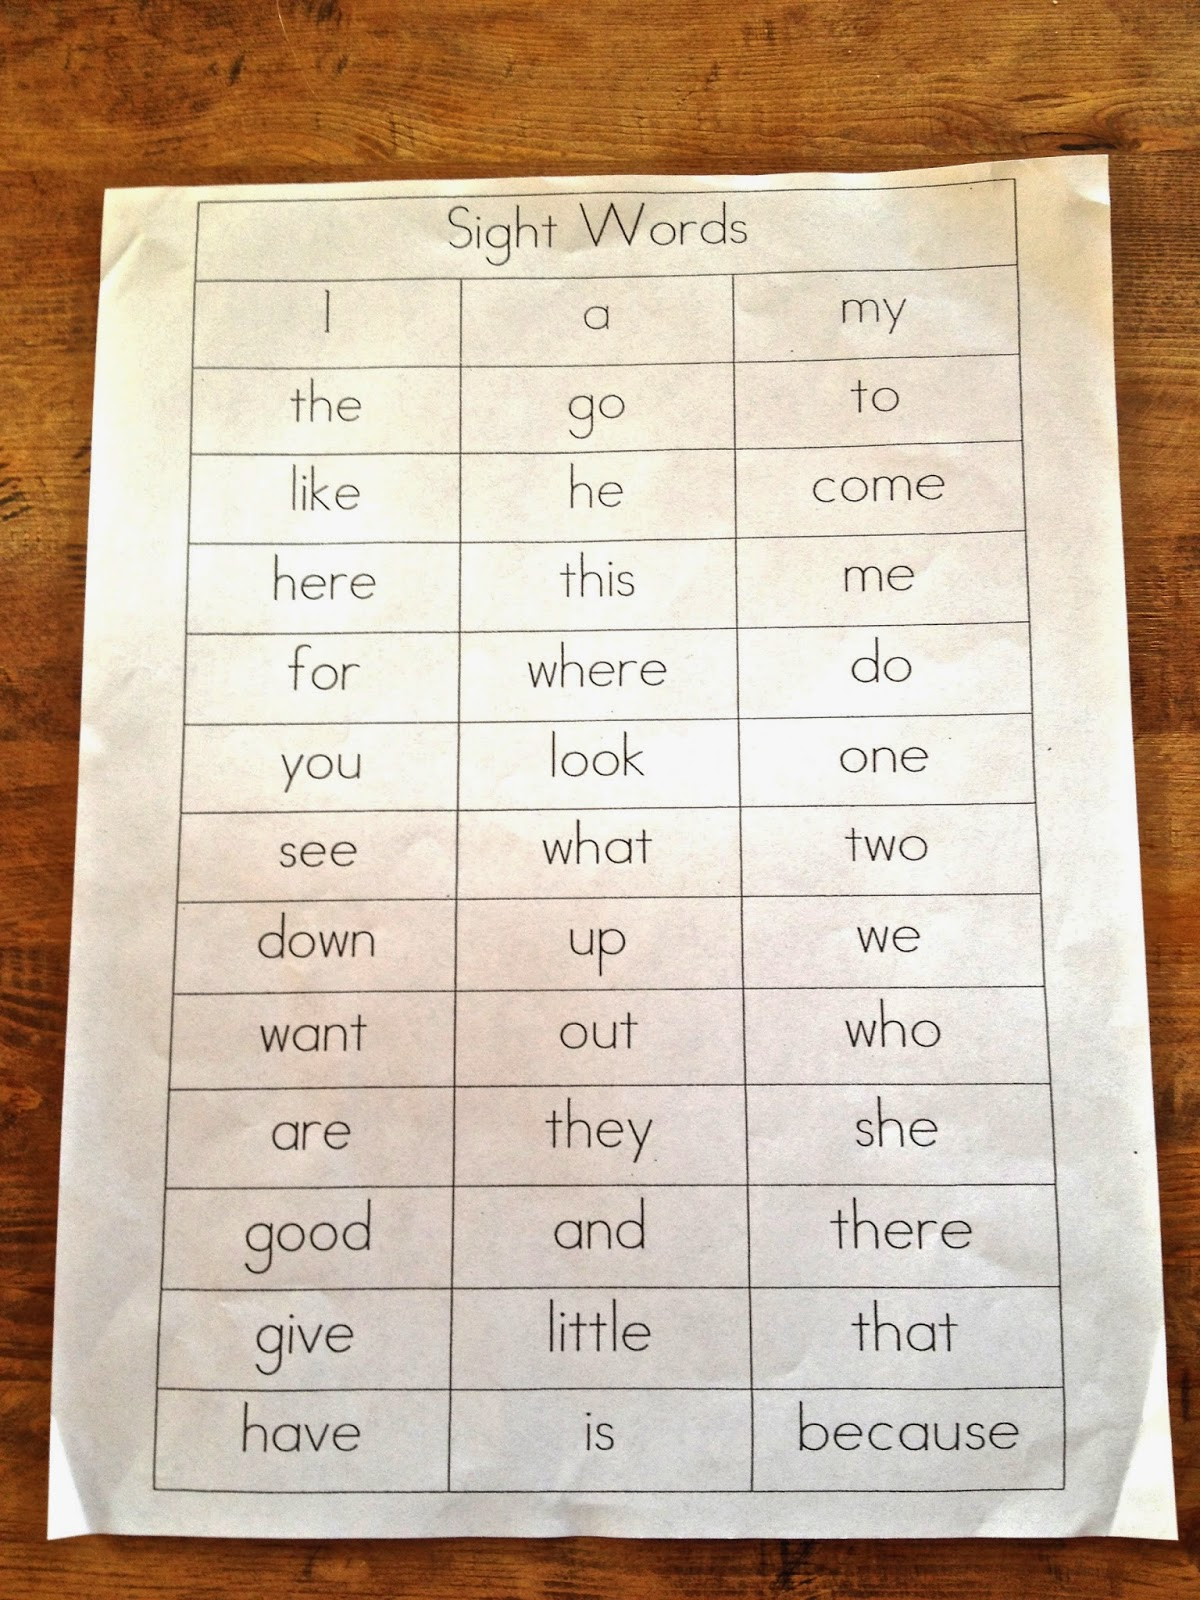 teaching sight words to kids pre-schoolers list of